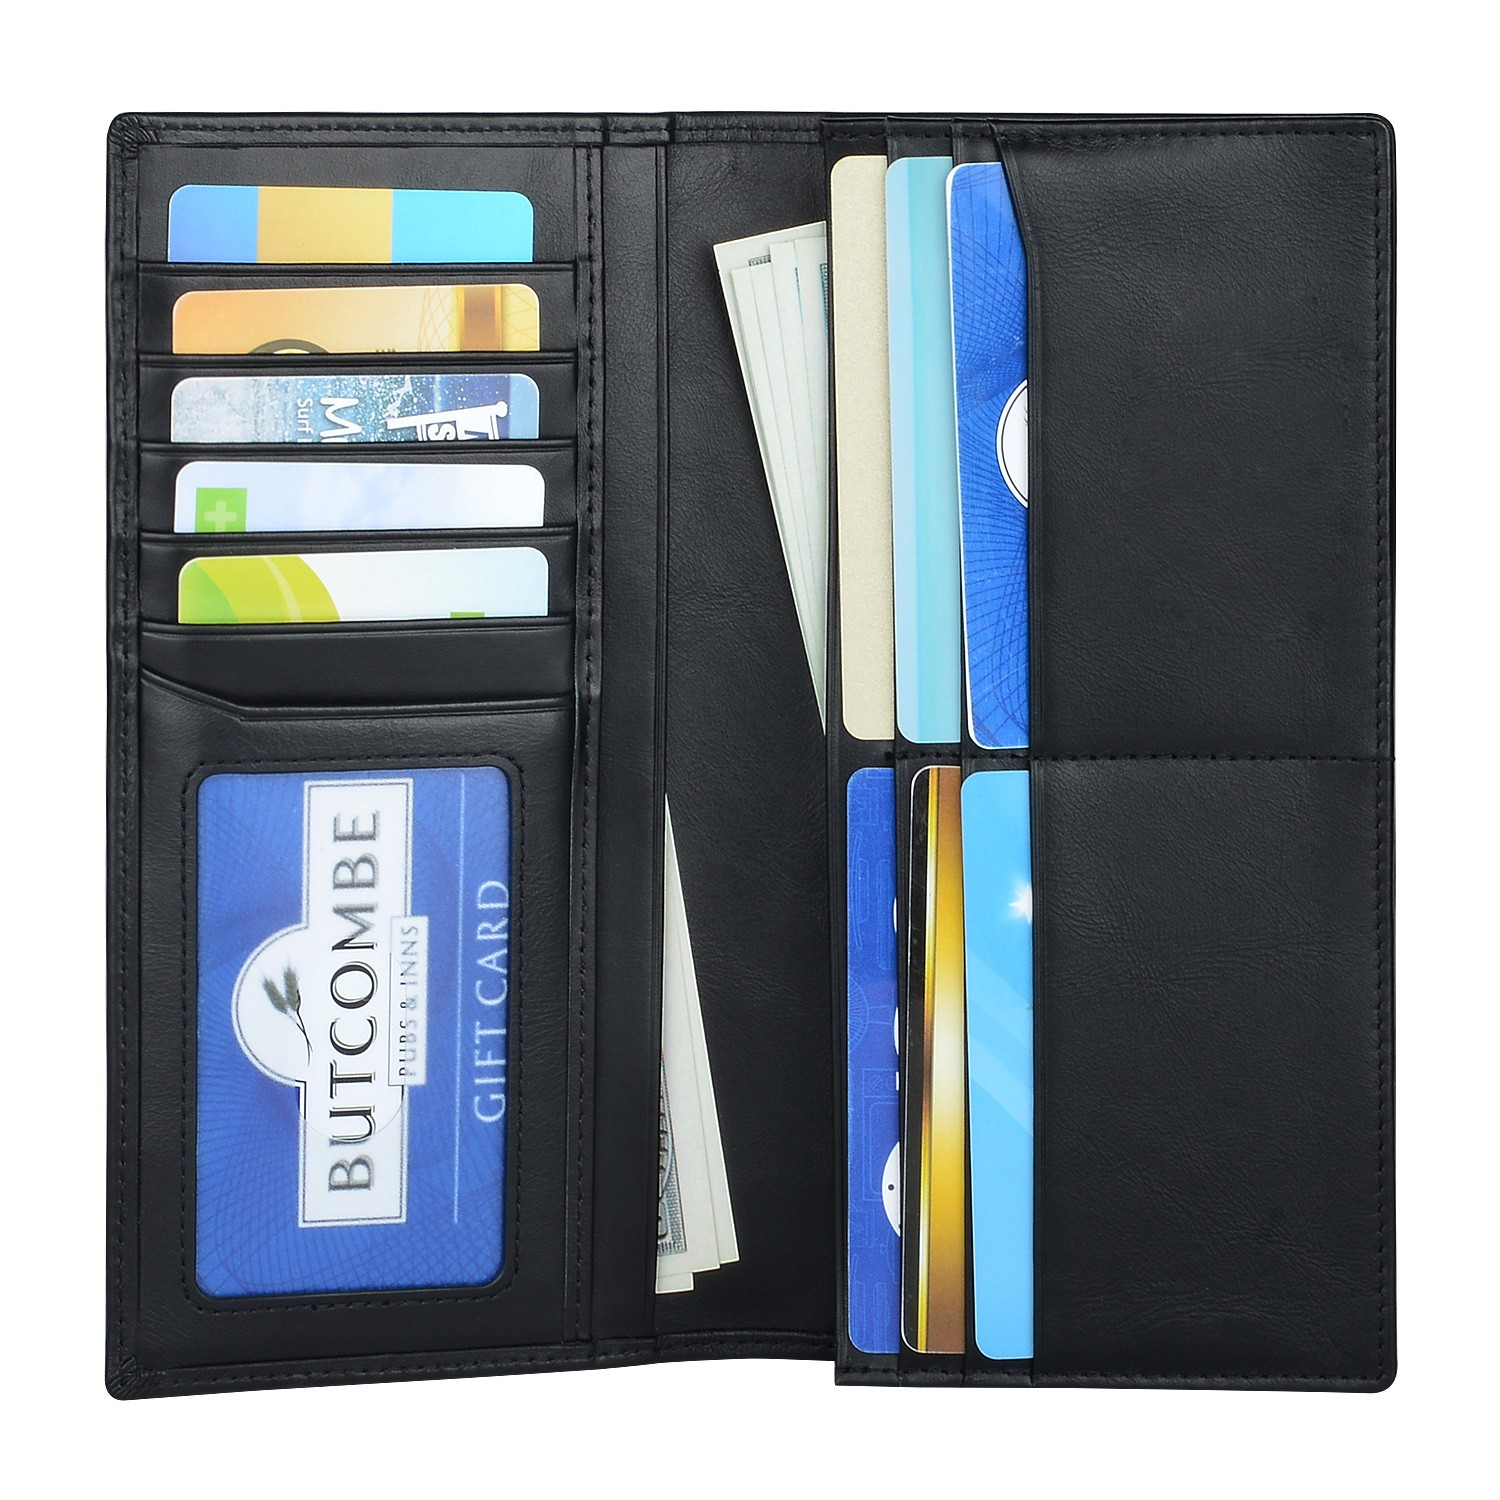 AIVI custom leather wallets online for men-4